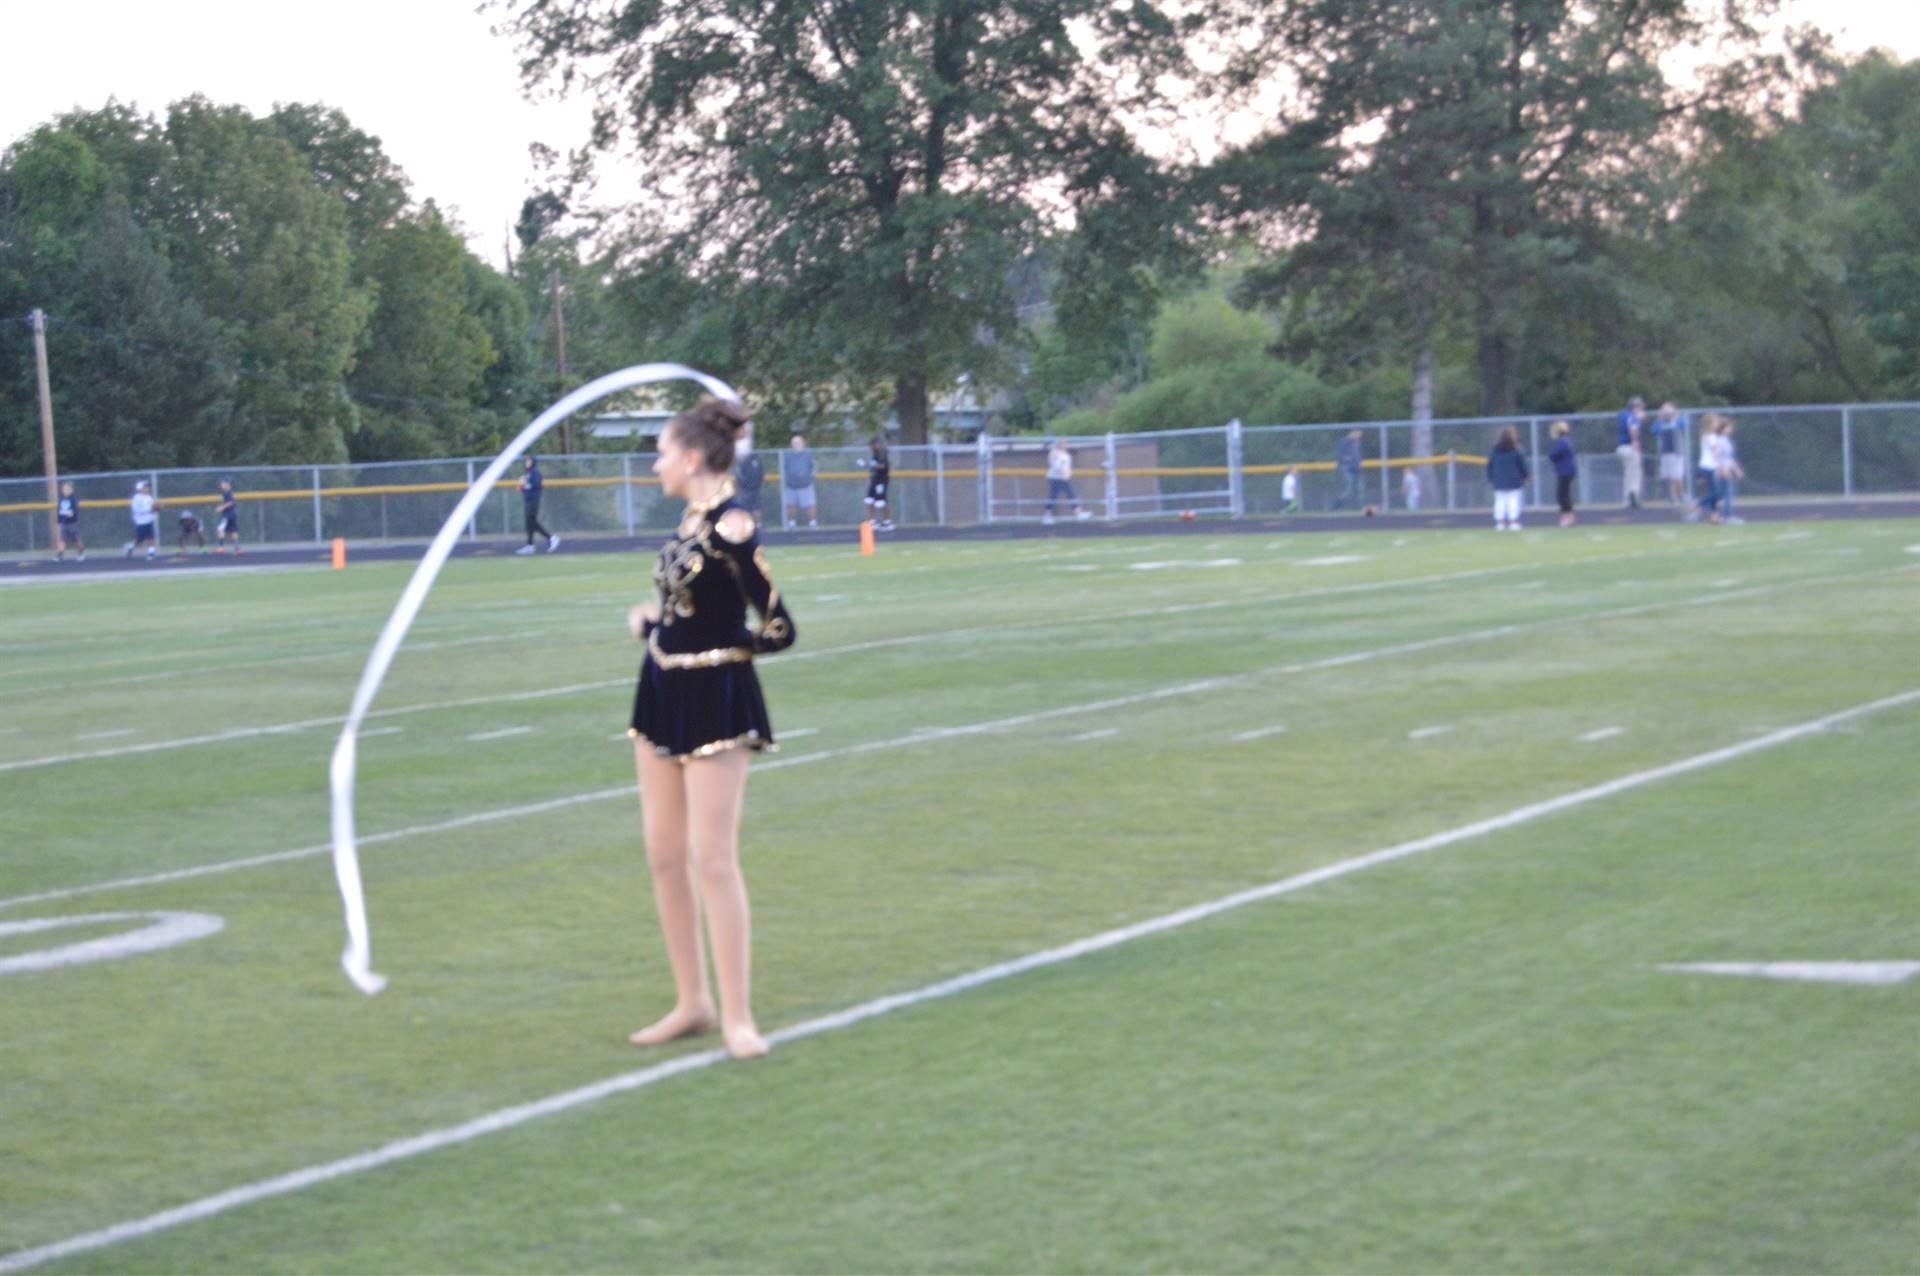 Drill Team Member with Ribbon